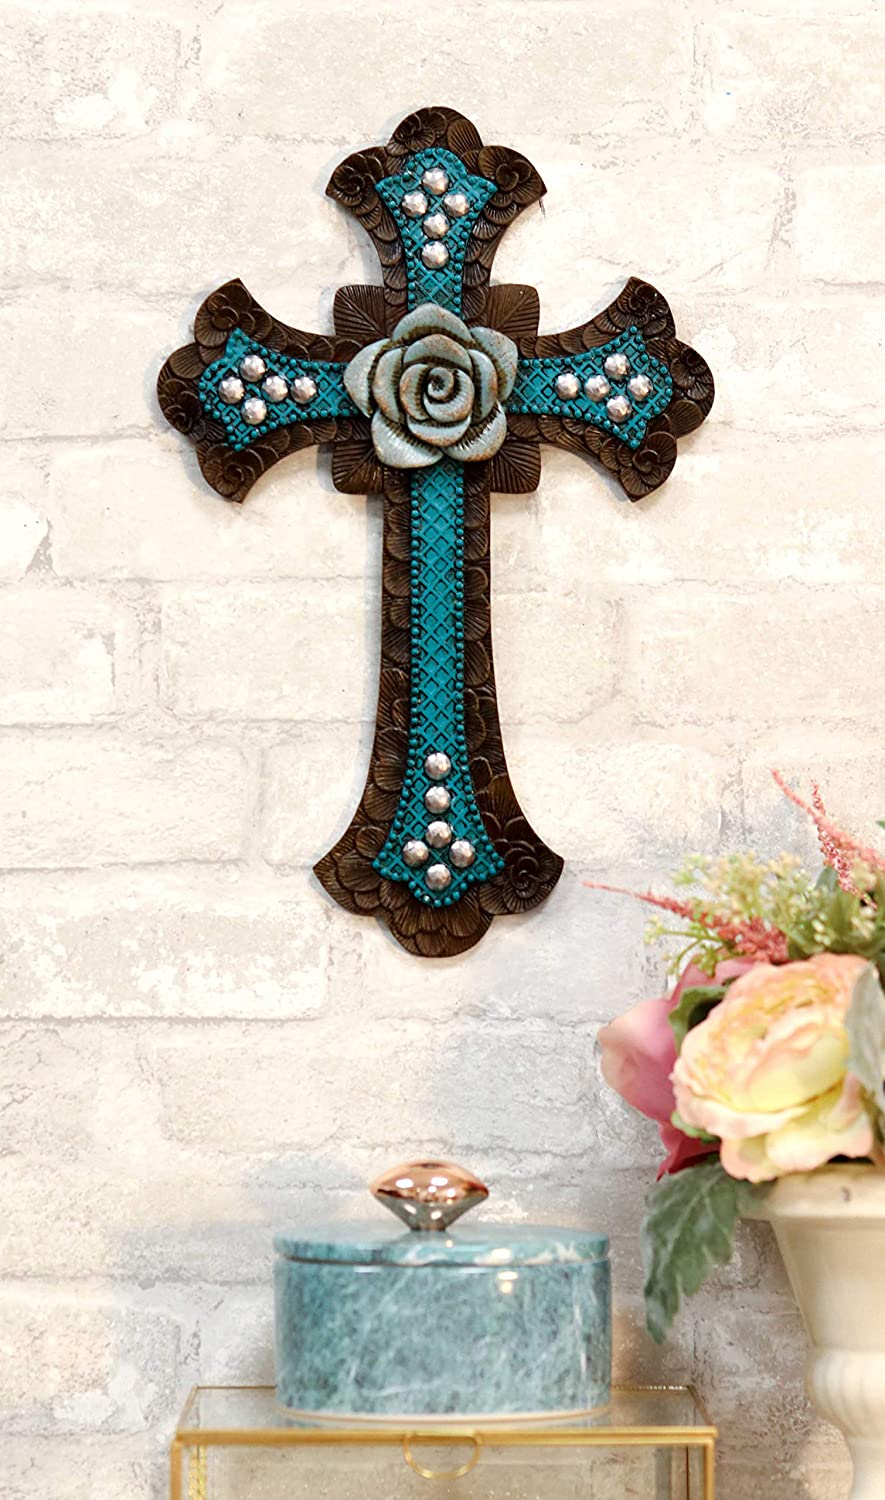 Ebros Rustic Southwestern Turquoise And Brown Tuscan Rose Of Sharon Floral Bloom Design Wall Cross Decor Plaque 13.5